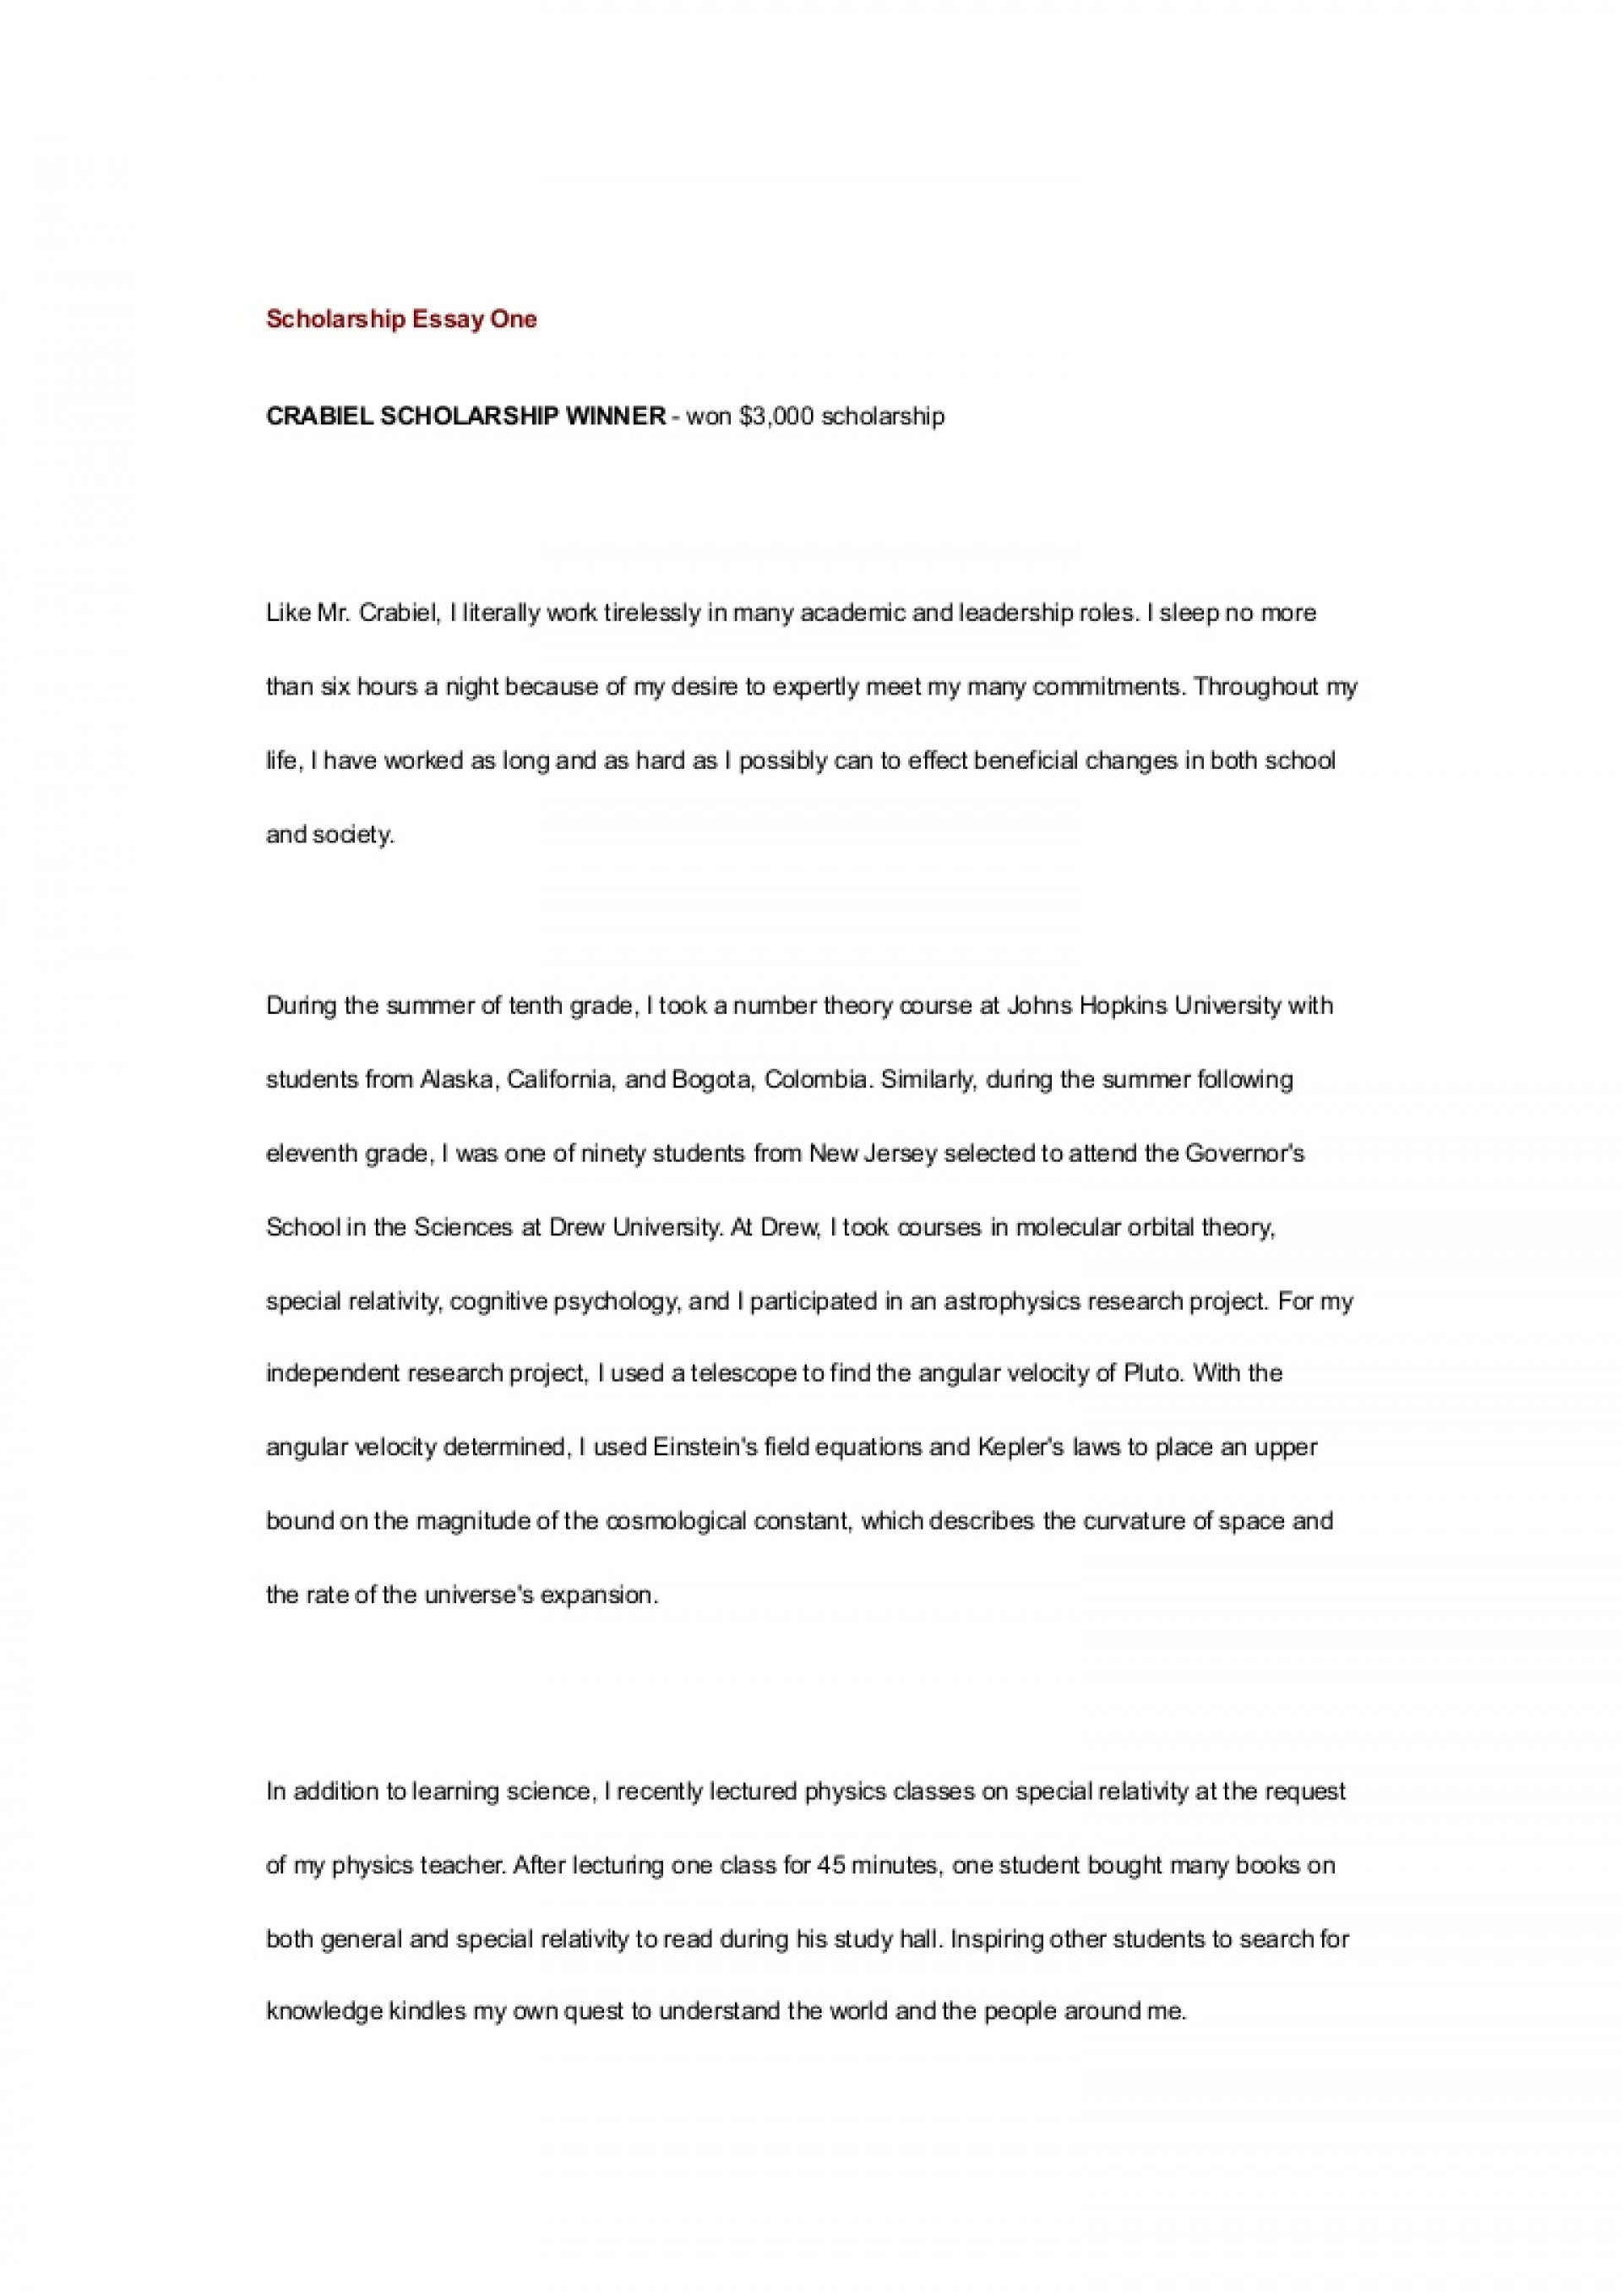 006 Winning Scholarship Essays Scholarshipessayone Phpapp01 Thumbnail Essay Exceptional Examples Pdf Gilman How To Write 1920